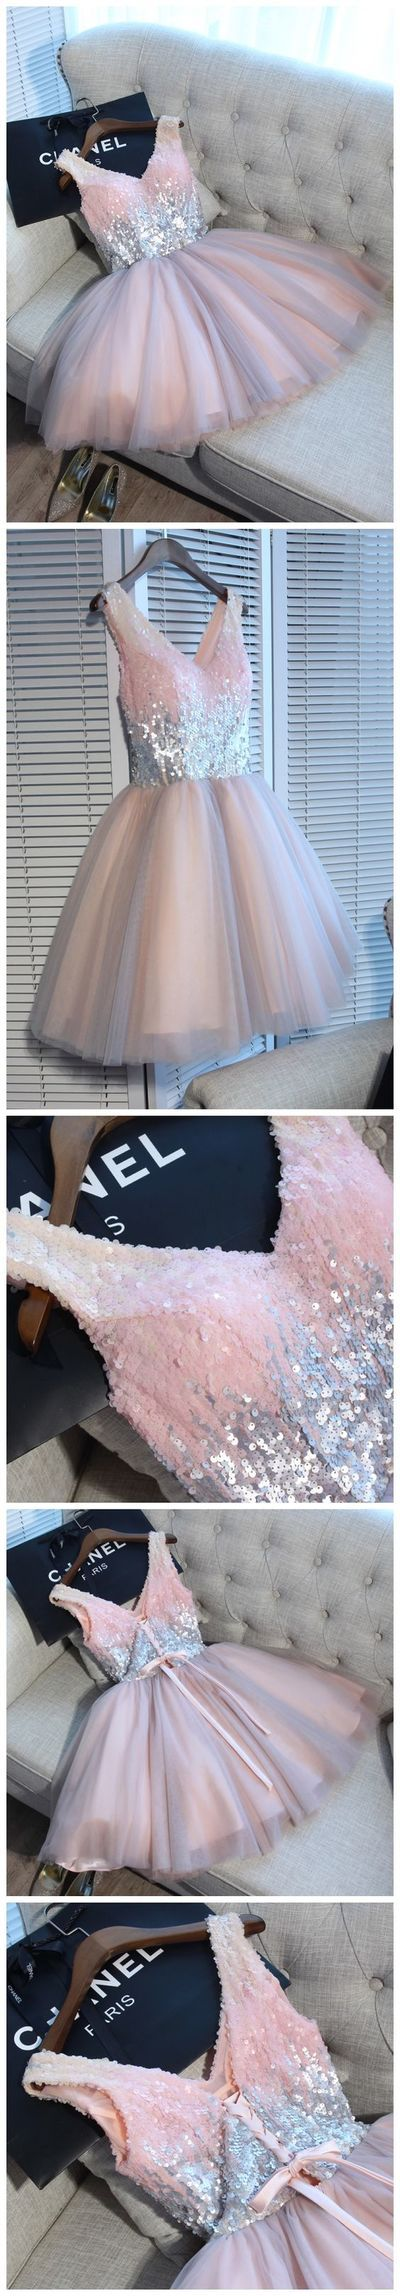 sweetheart lace A-line ball gown dresses,gradustion dress for teens Party Dress cocktail dresses